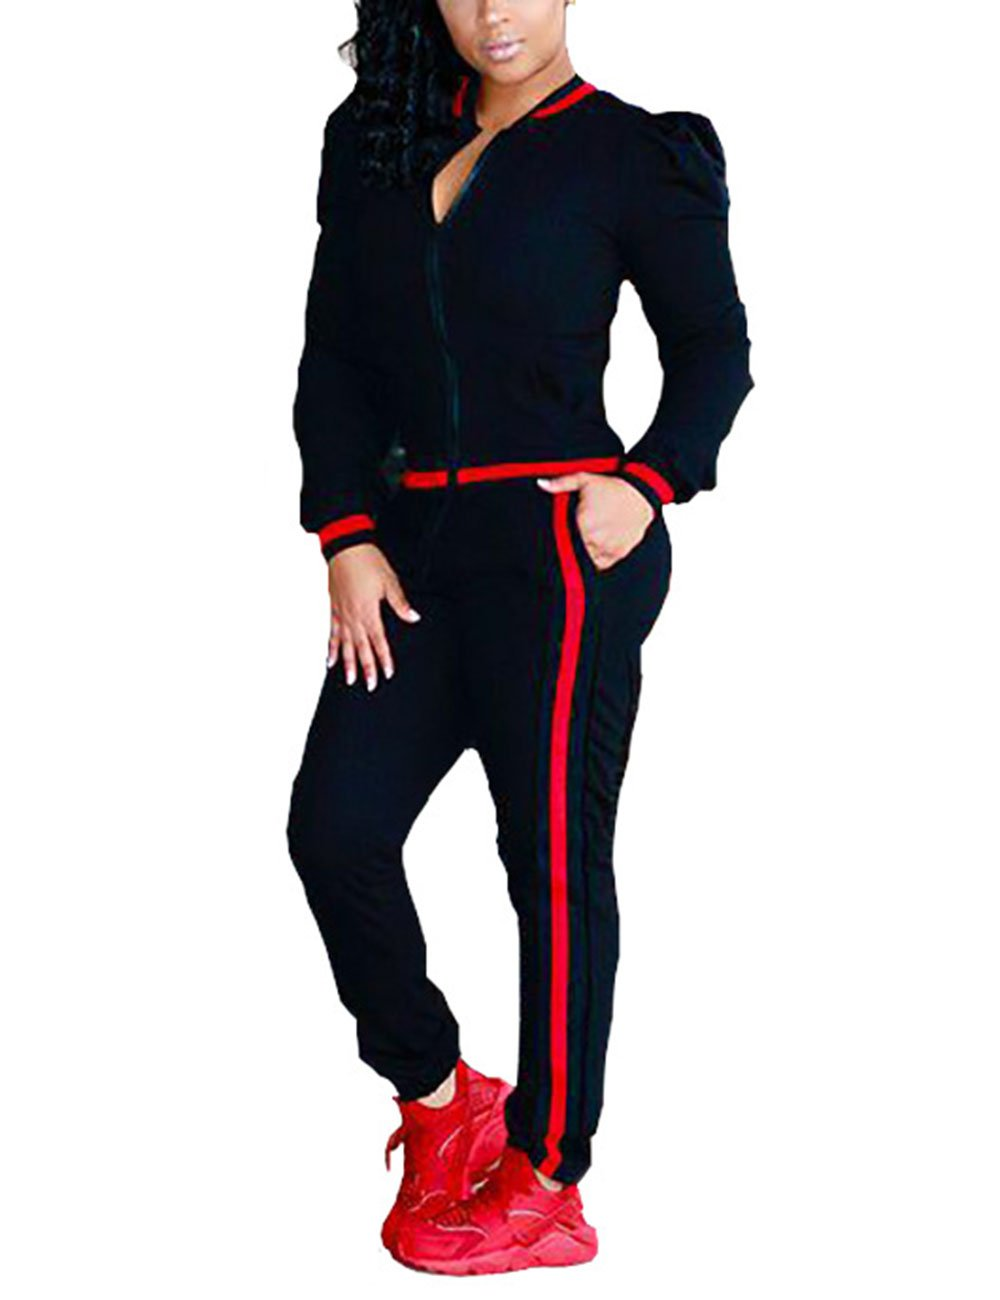 Akmipoem Casual Long Sleeve Zip Up Jacket and Pants Tracksuits 2 Pieces Outfits for Ladies Black M by Akmipoem